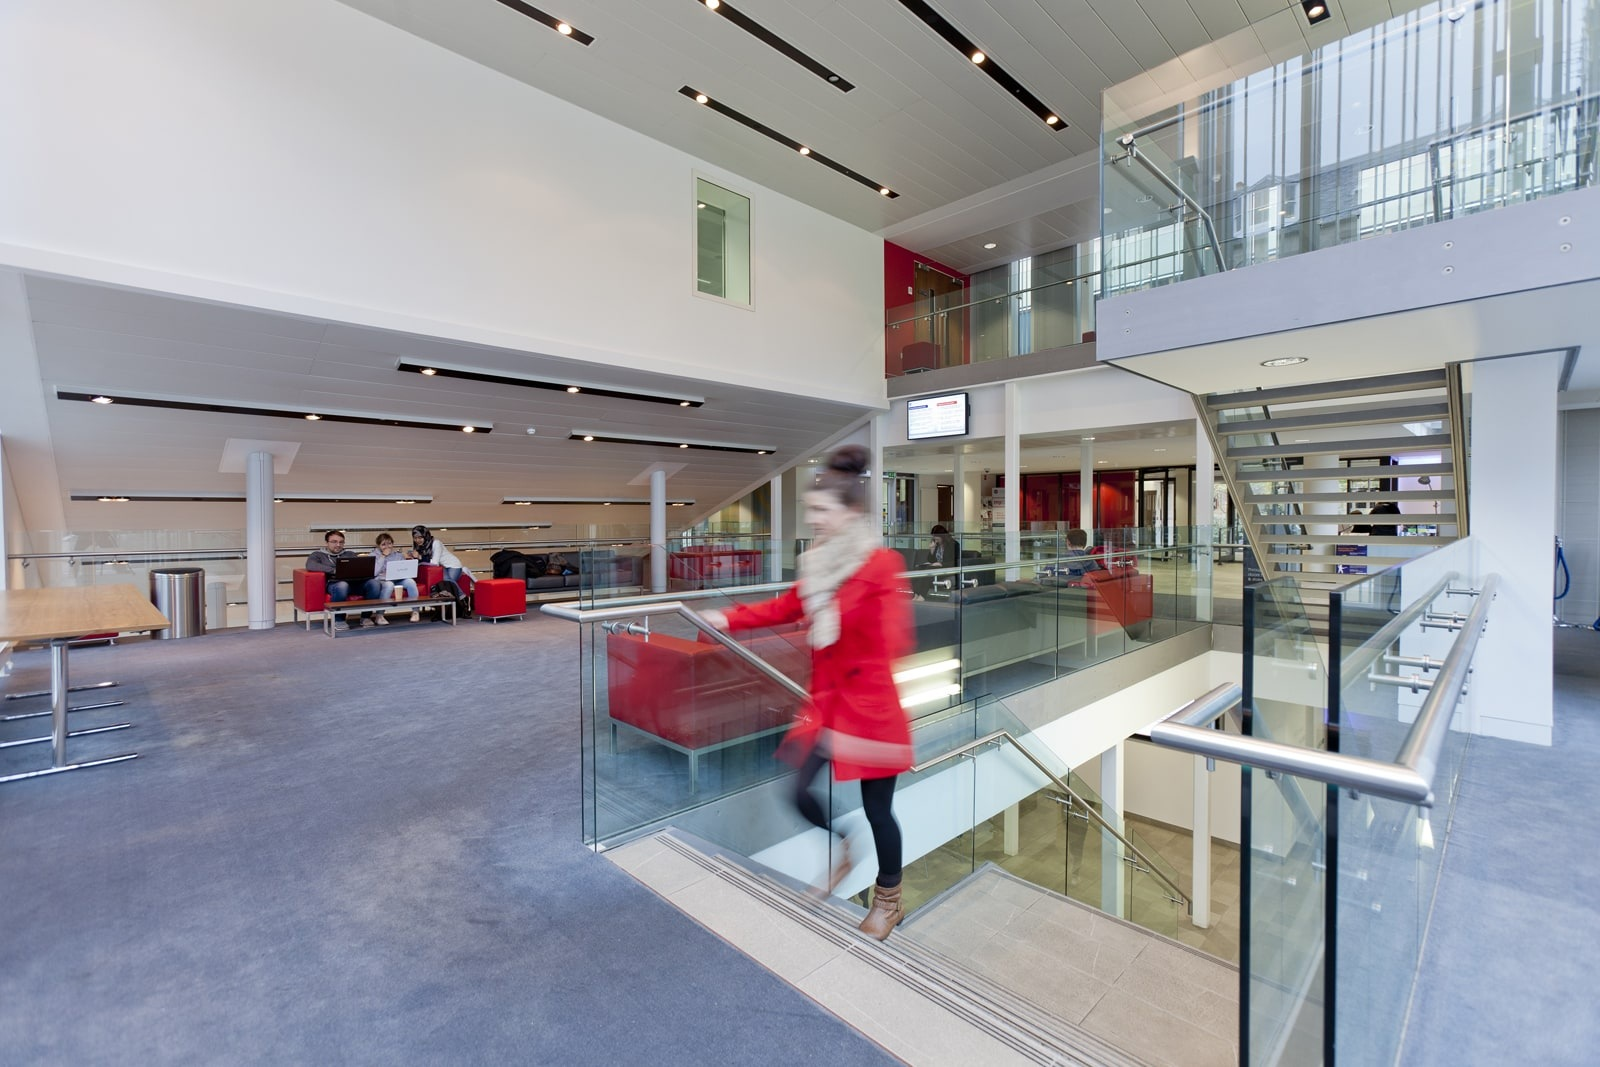 Interior Business School